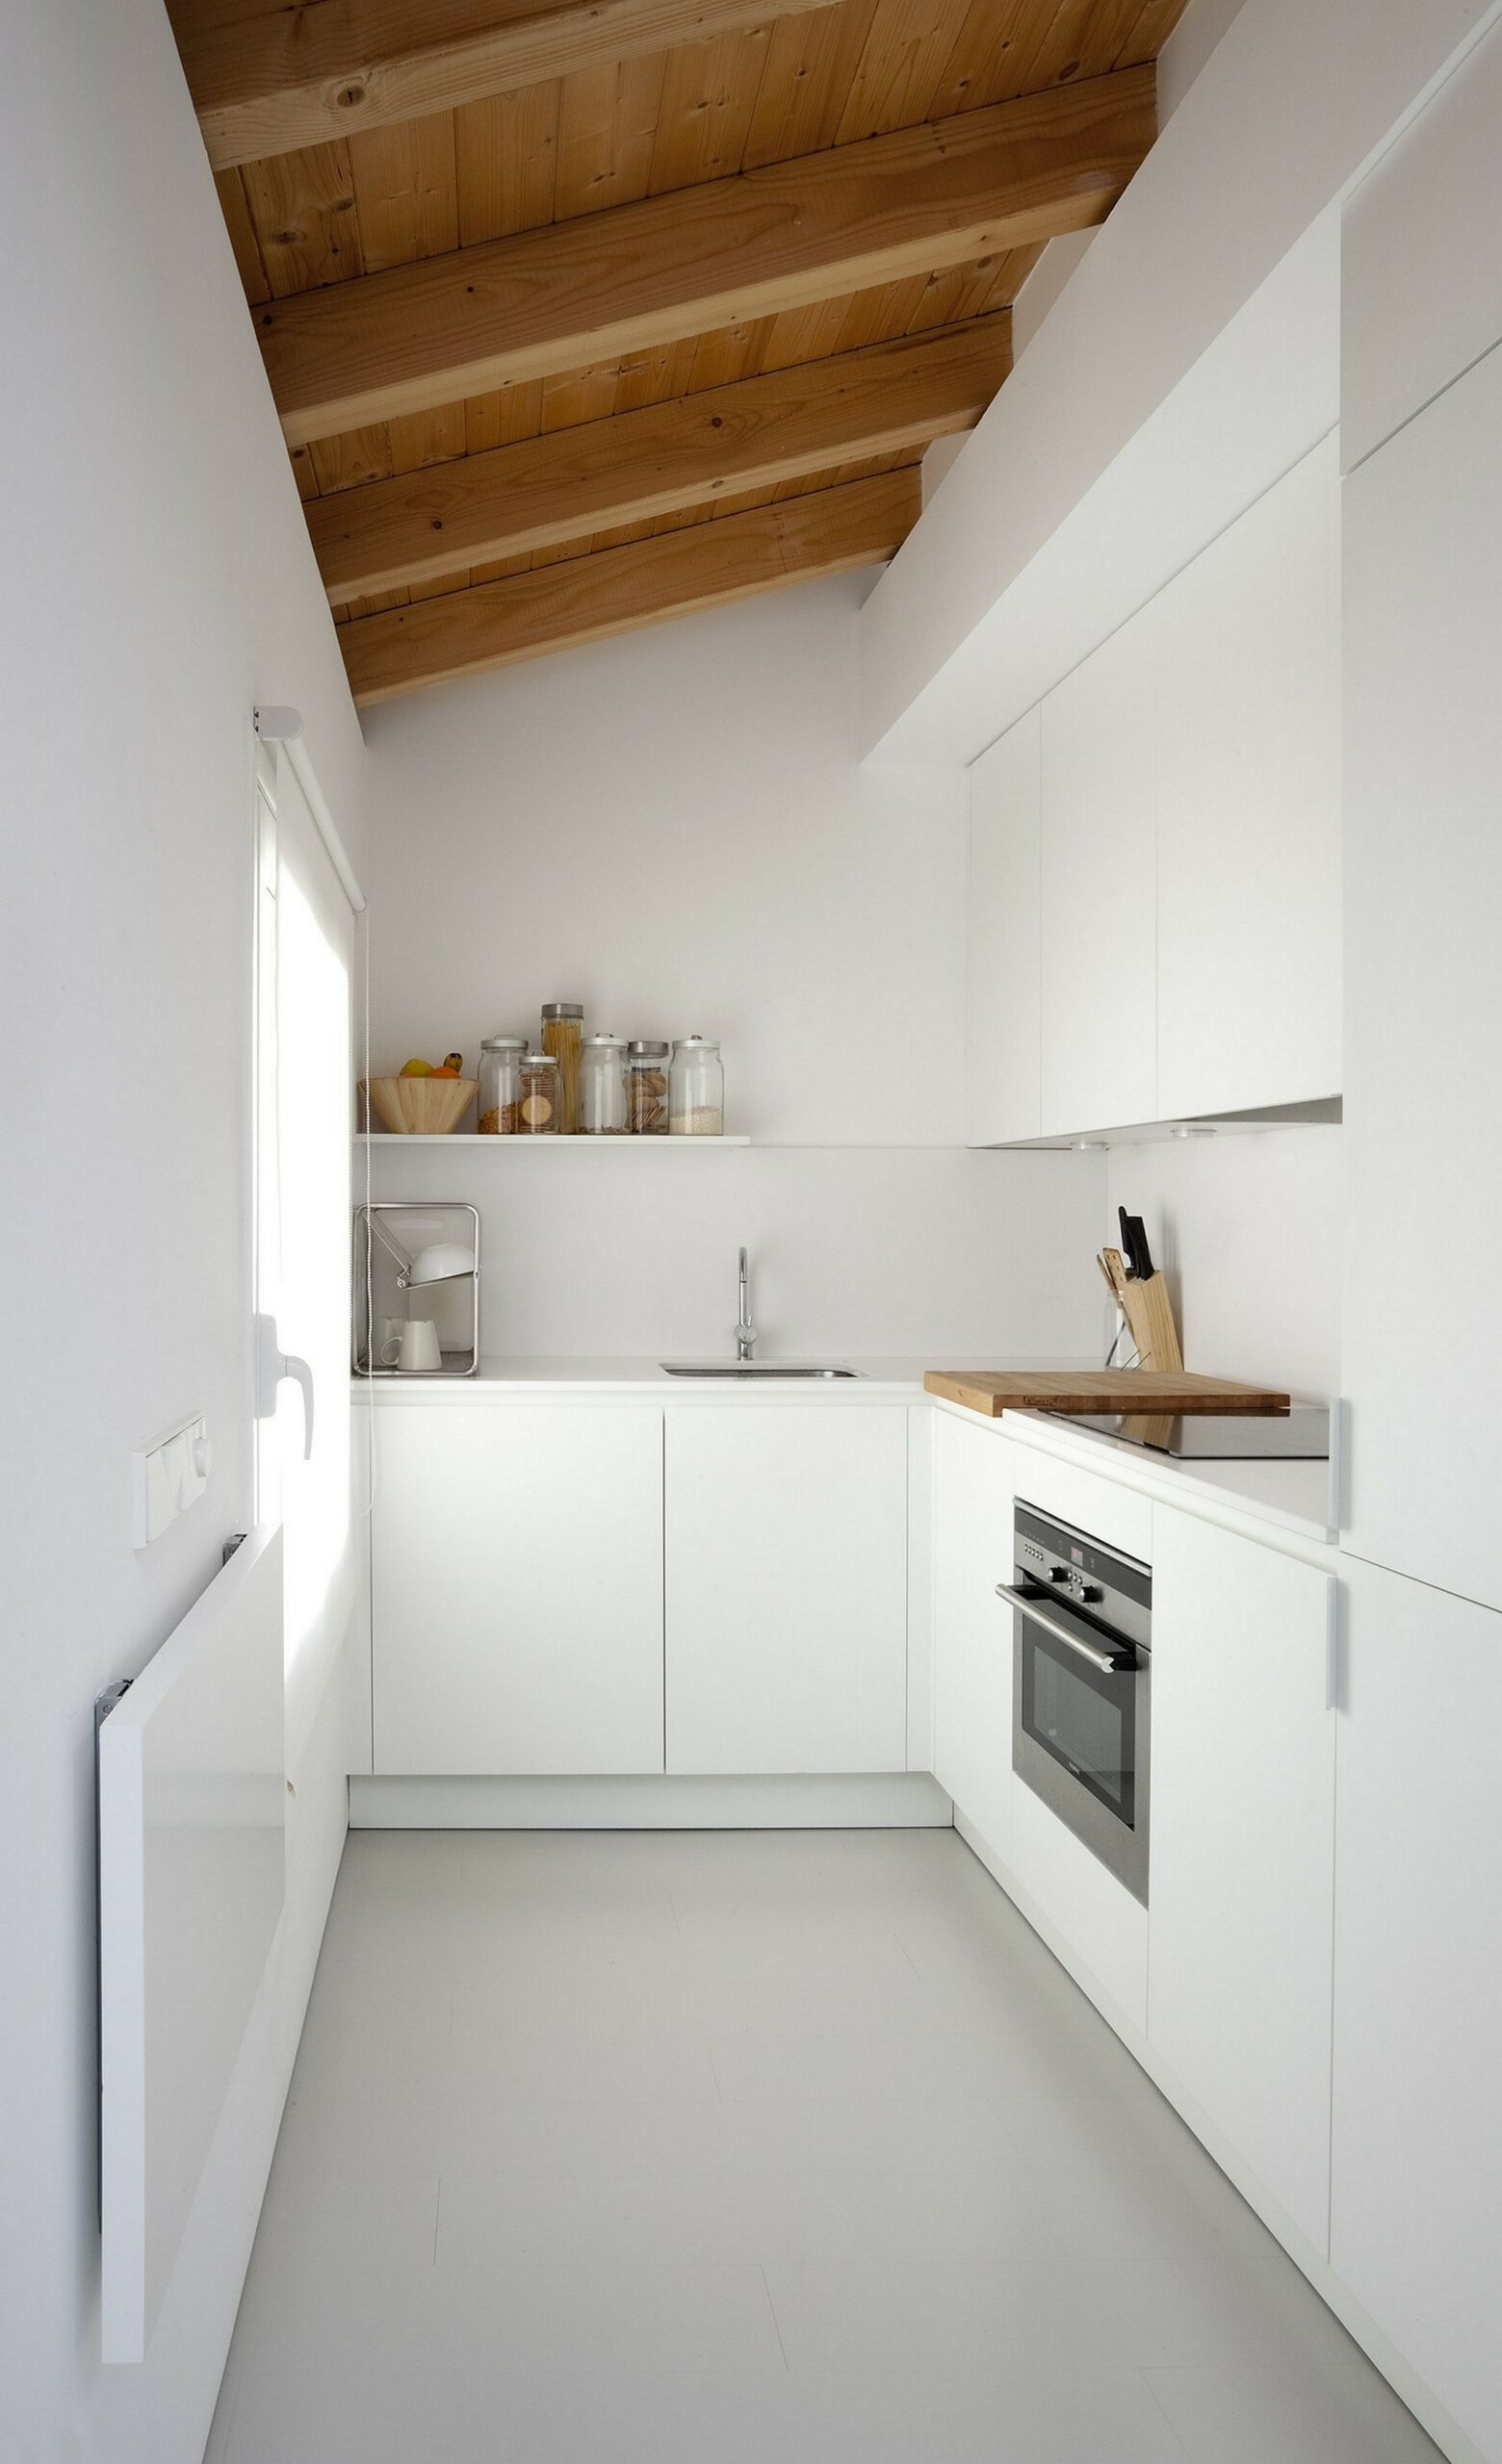 86 Some Small Kitchen Ideas To Help You Do Up Your Kitchen 27